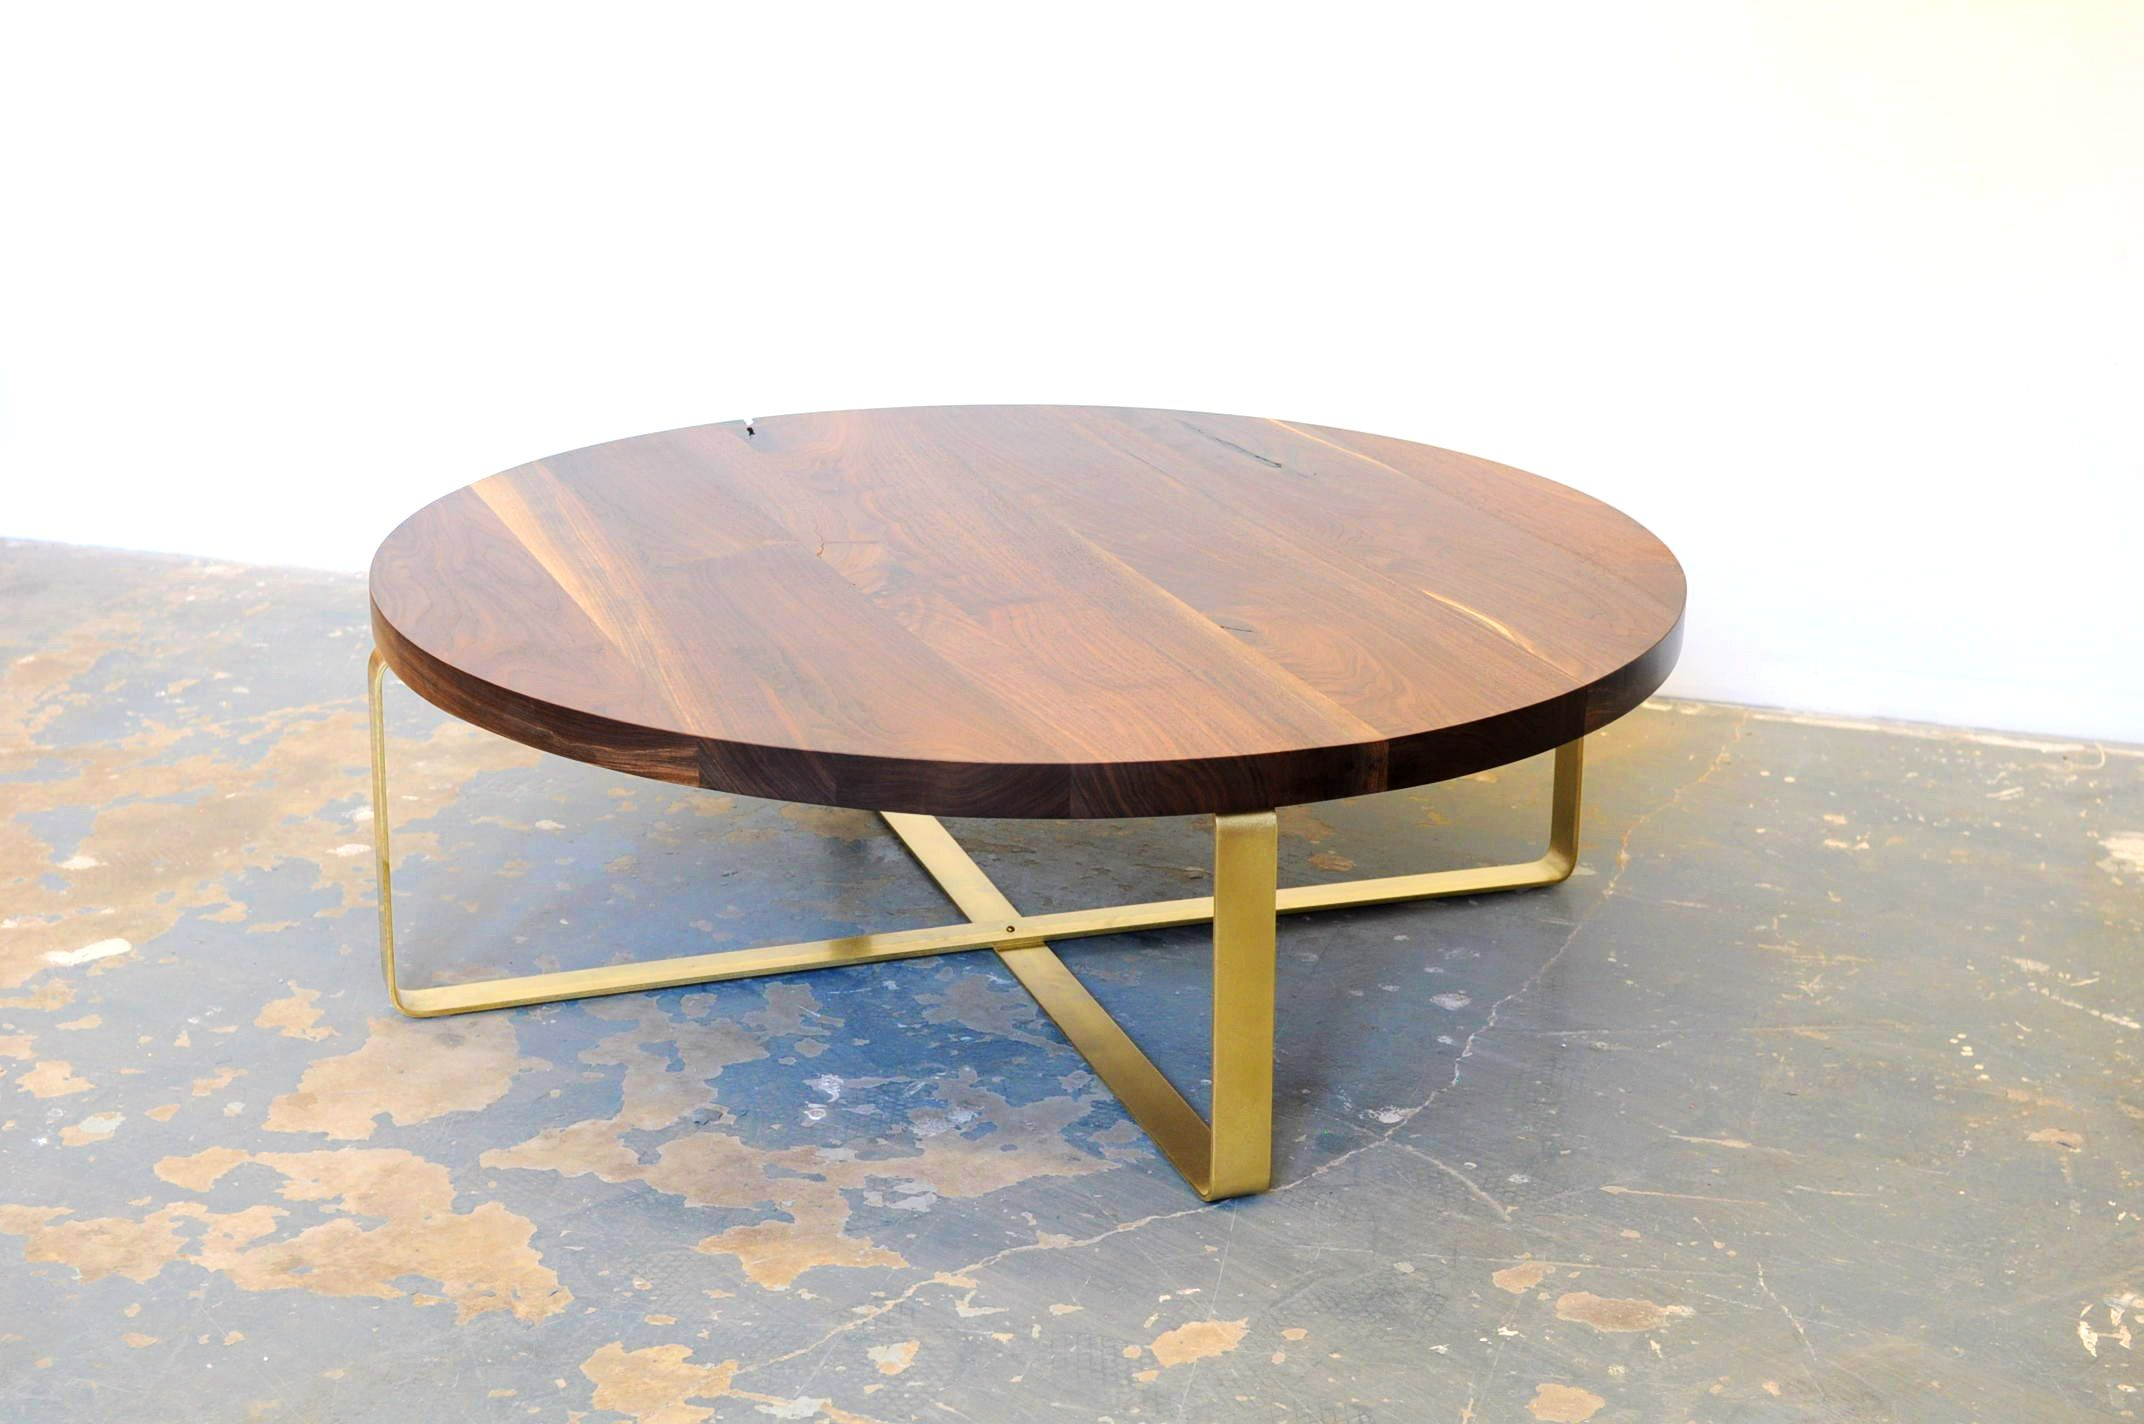 Attractive round brass coffee table with kitchen glamorous brass coffee table round the stylish and